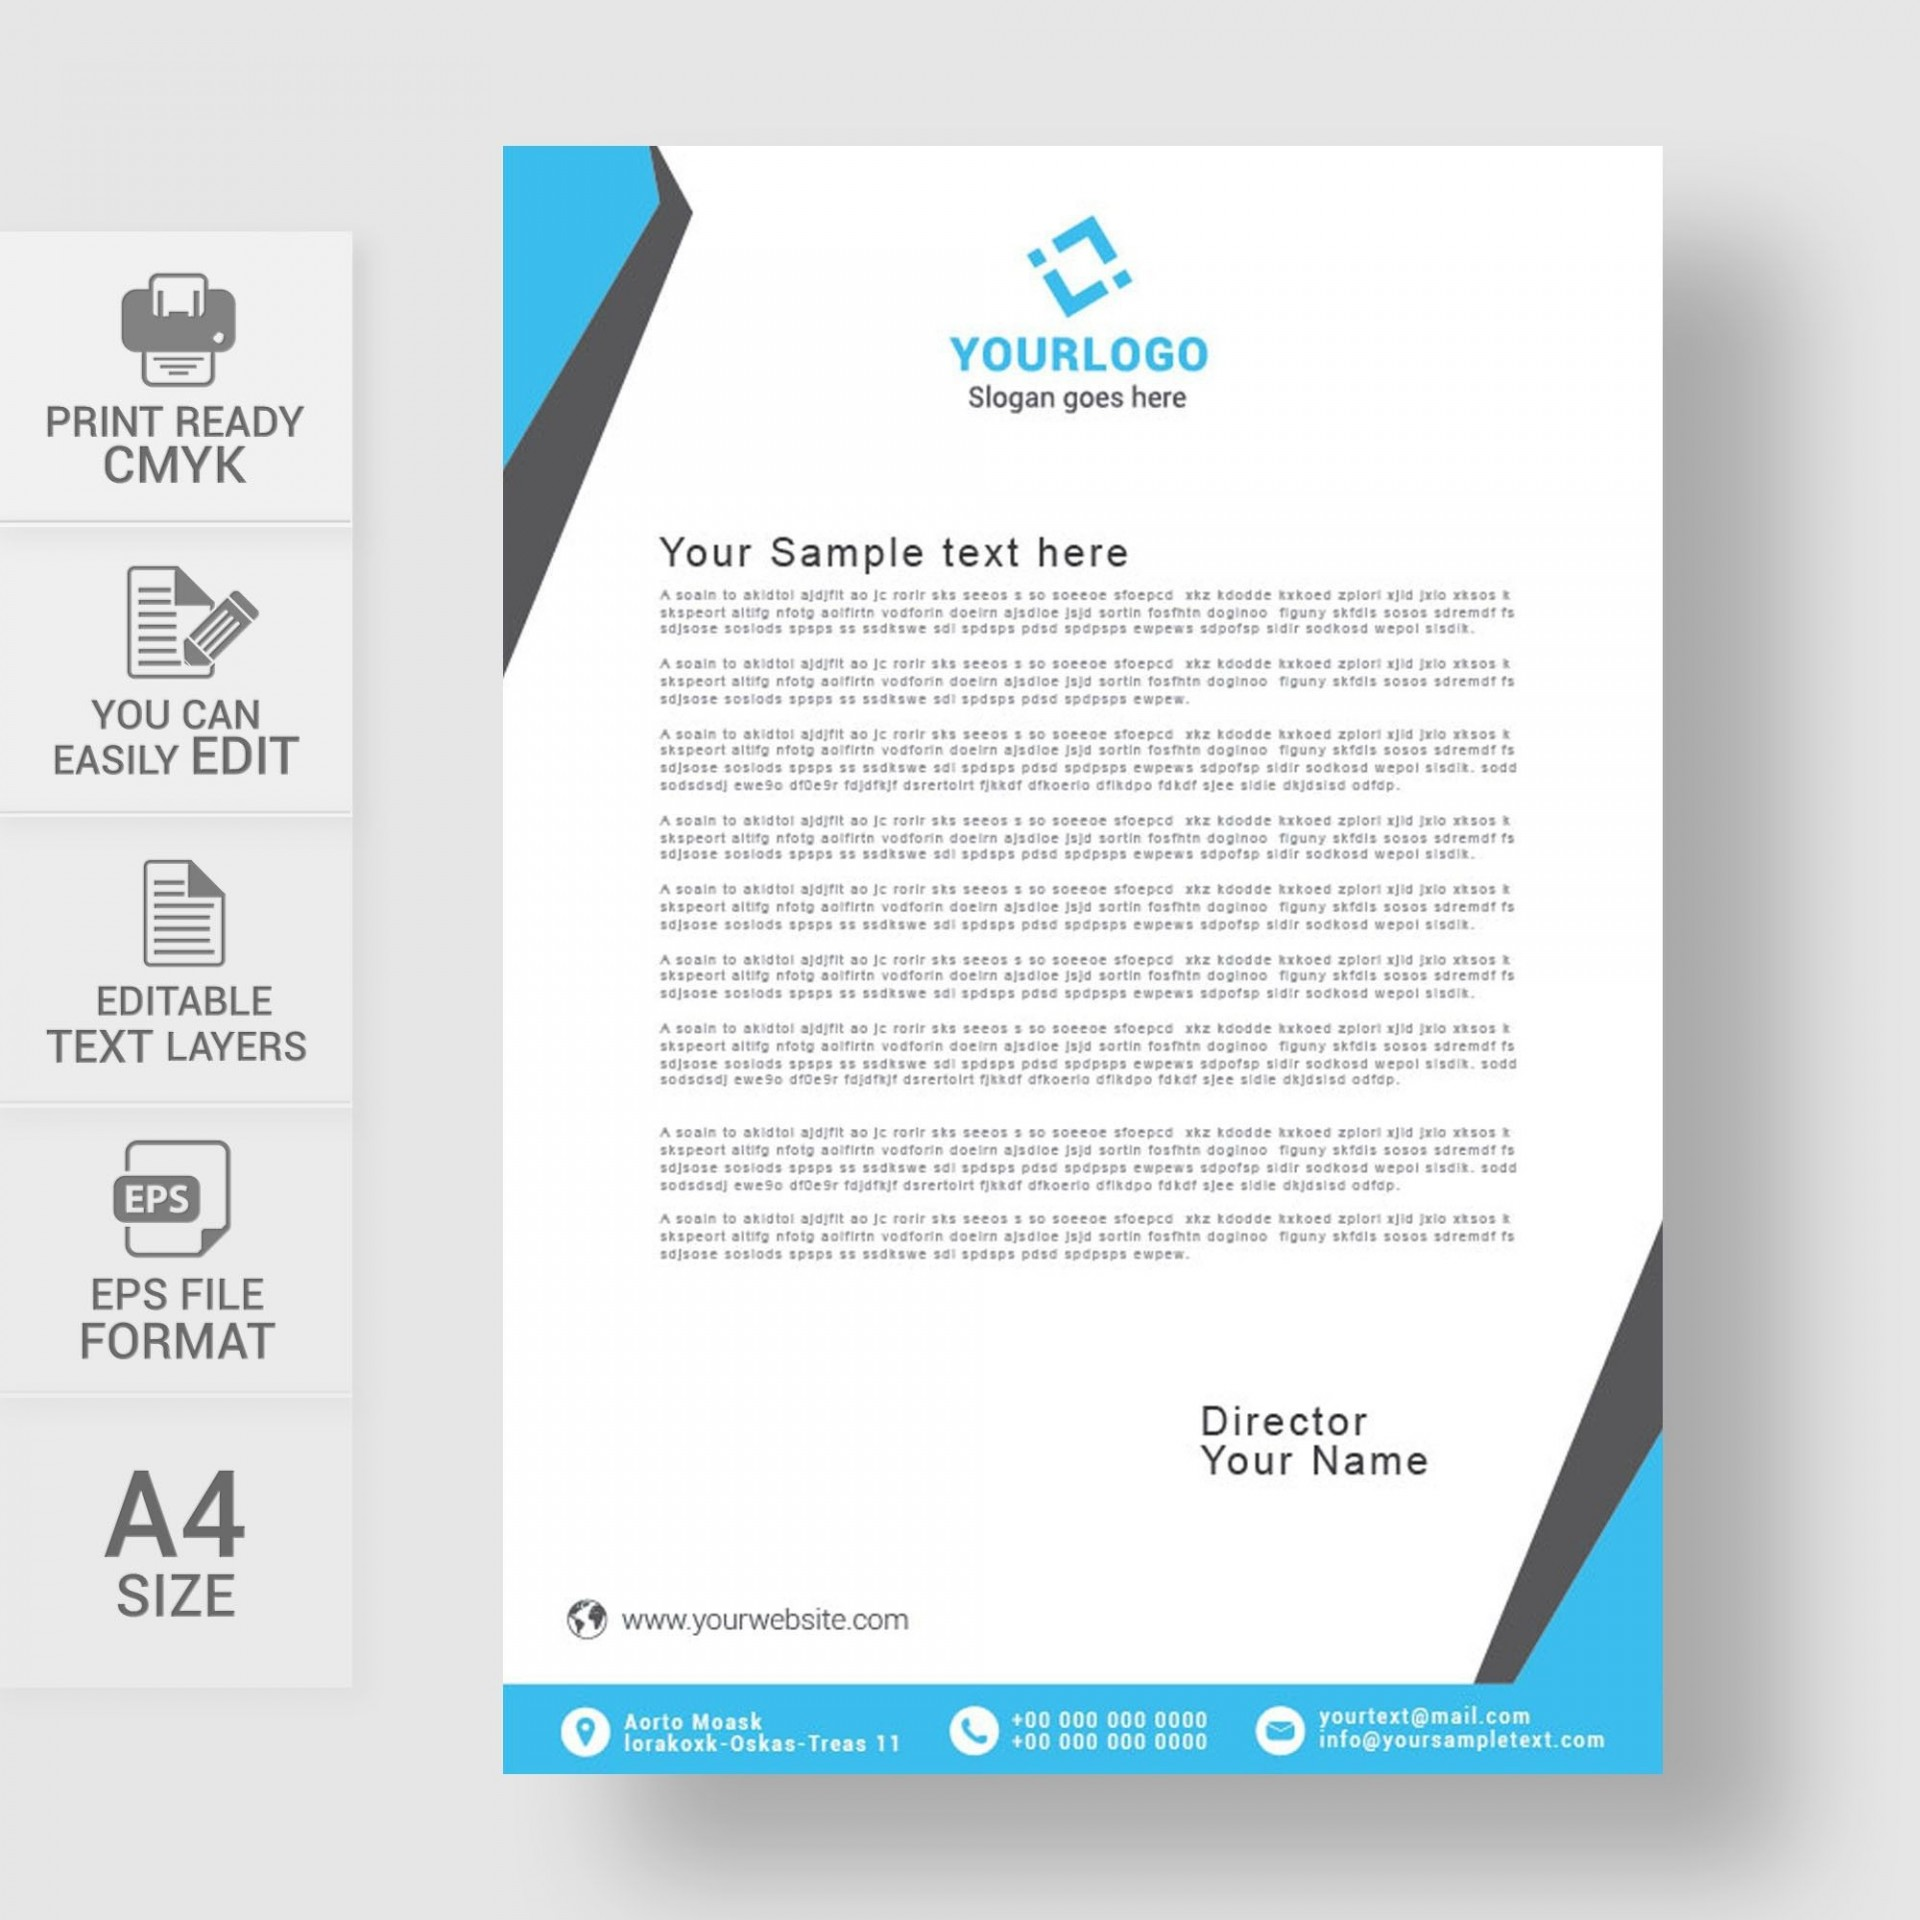 000 Unique Free Company Letterhead Template Sample  Online Psd Download Word 20071920